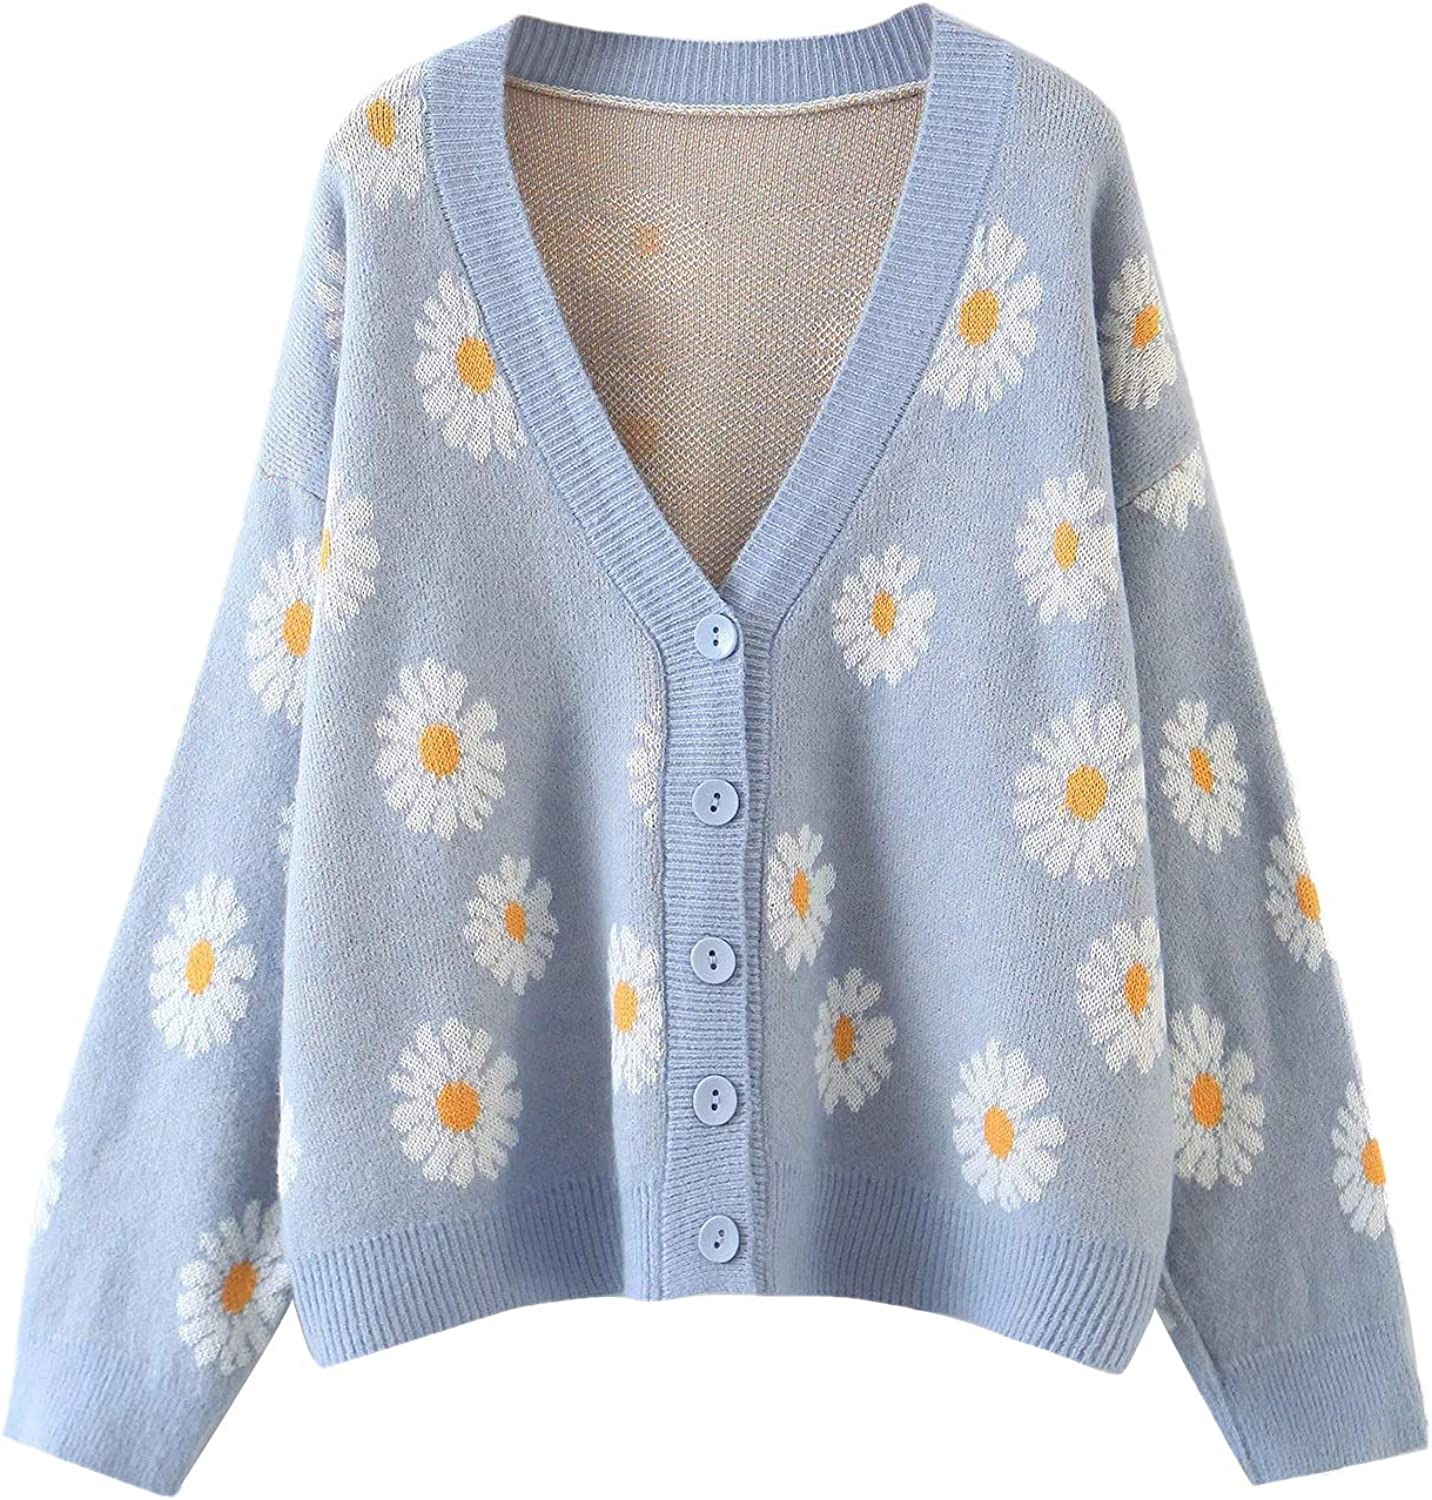 Women Floral Print Cardigan V Neck Y2K Knit Long Sleeve Casual Sweater Open Front Button 90s Outerwear